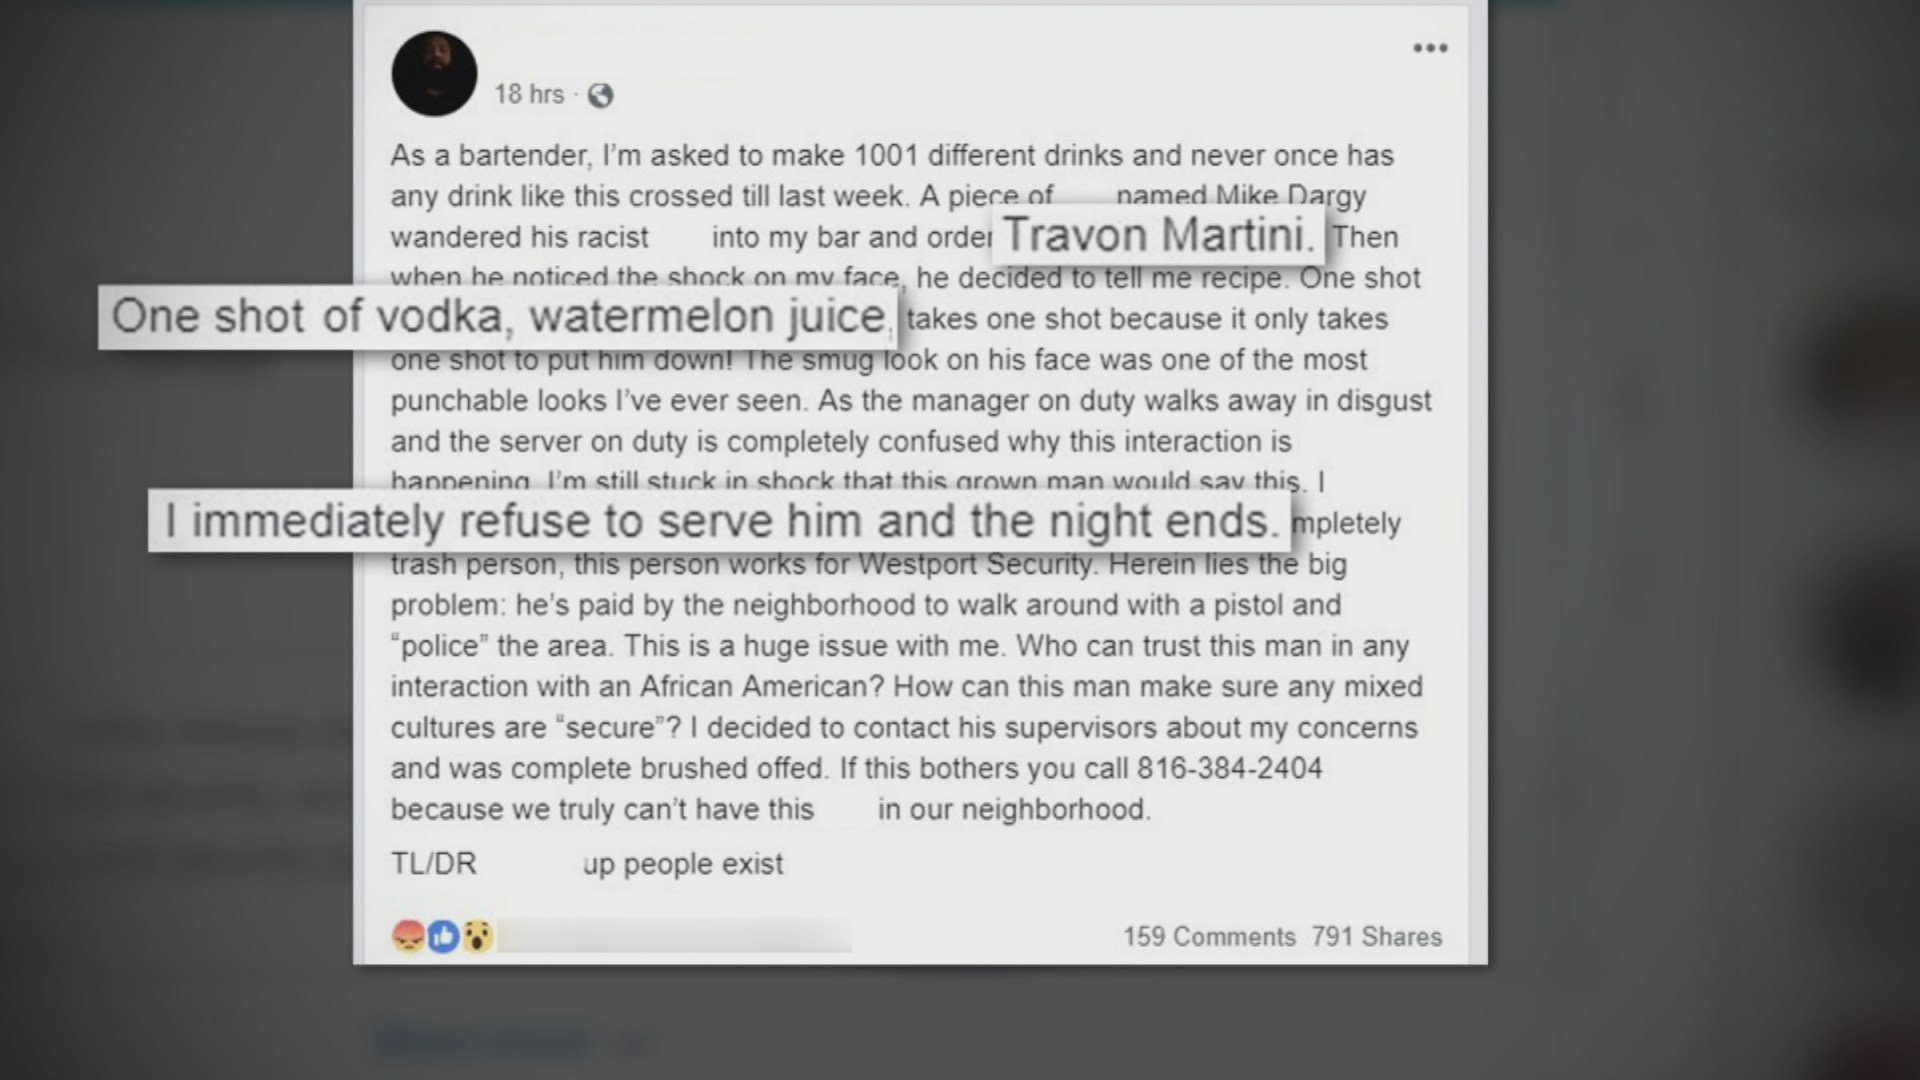 Westport bartender says security guard ordered 'Trayvon Martini'